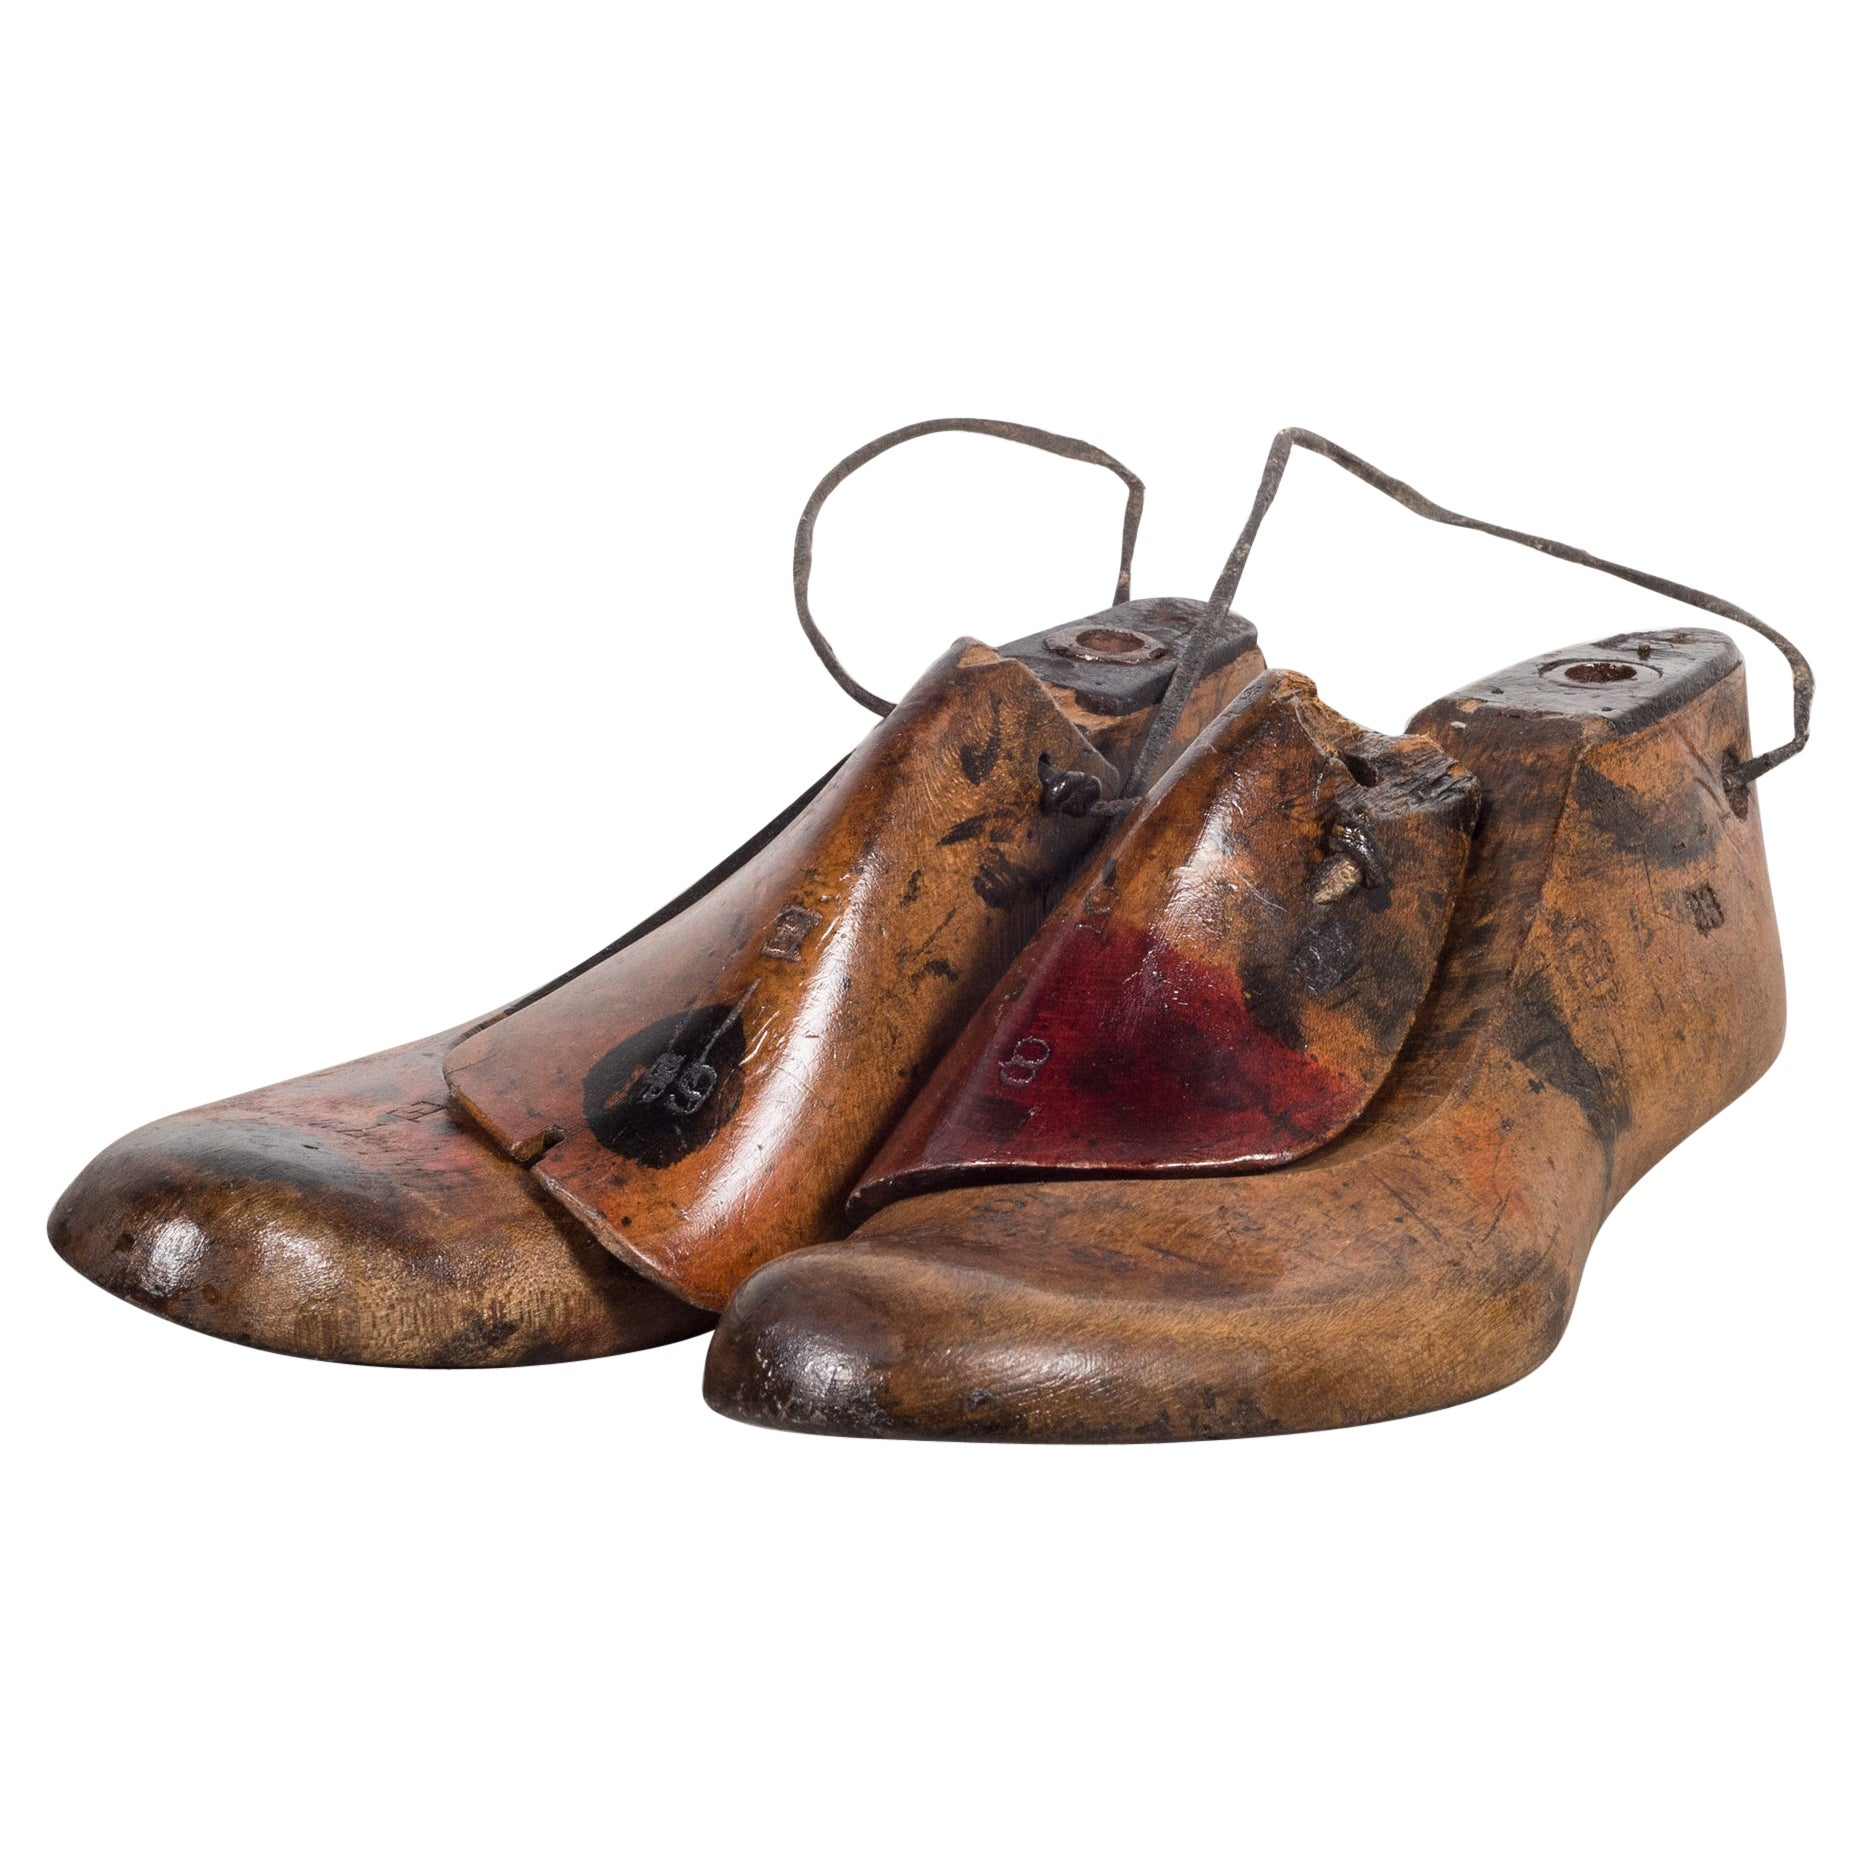 Early 20th Century Antique Wood and Leather Shoe Last, circa 1920